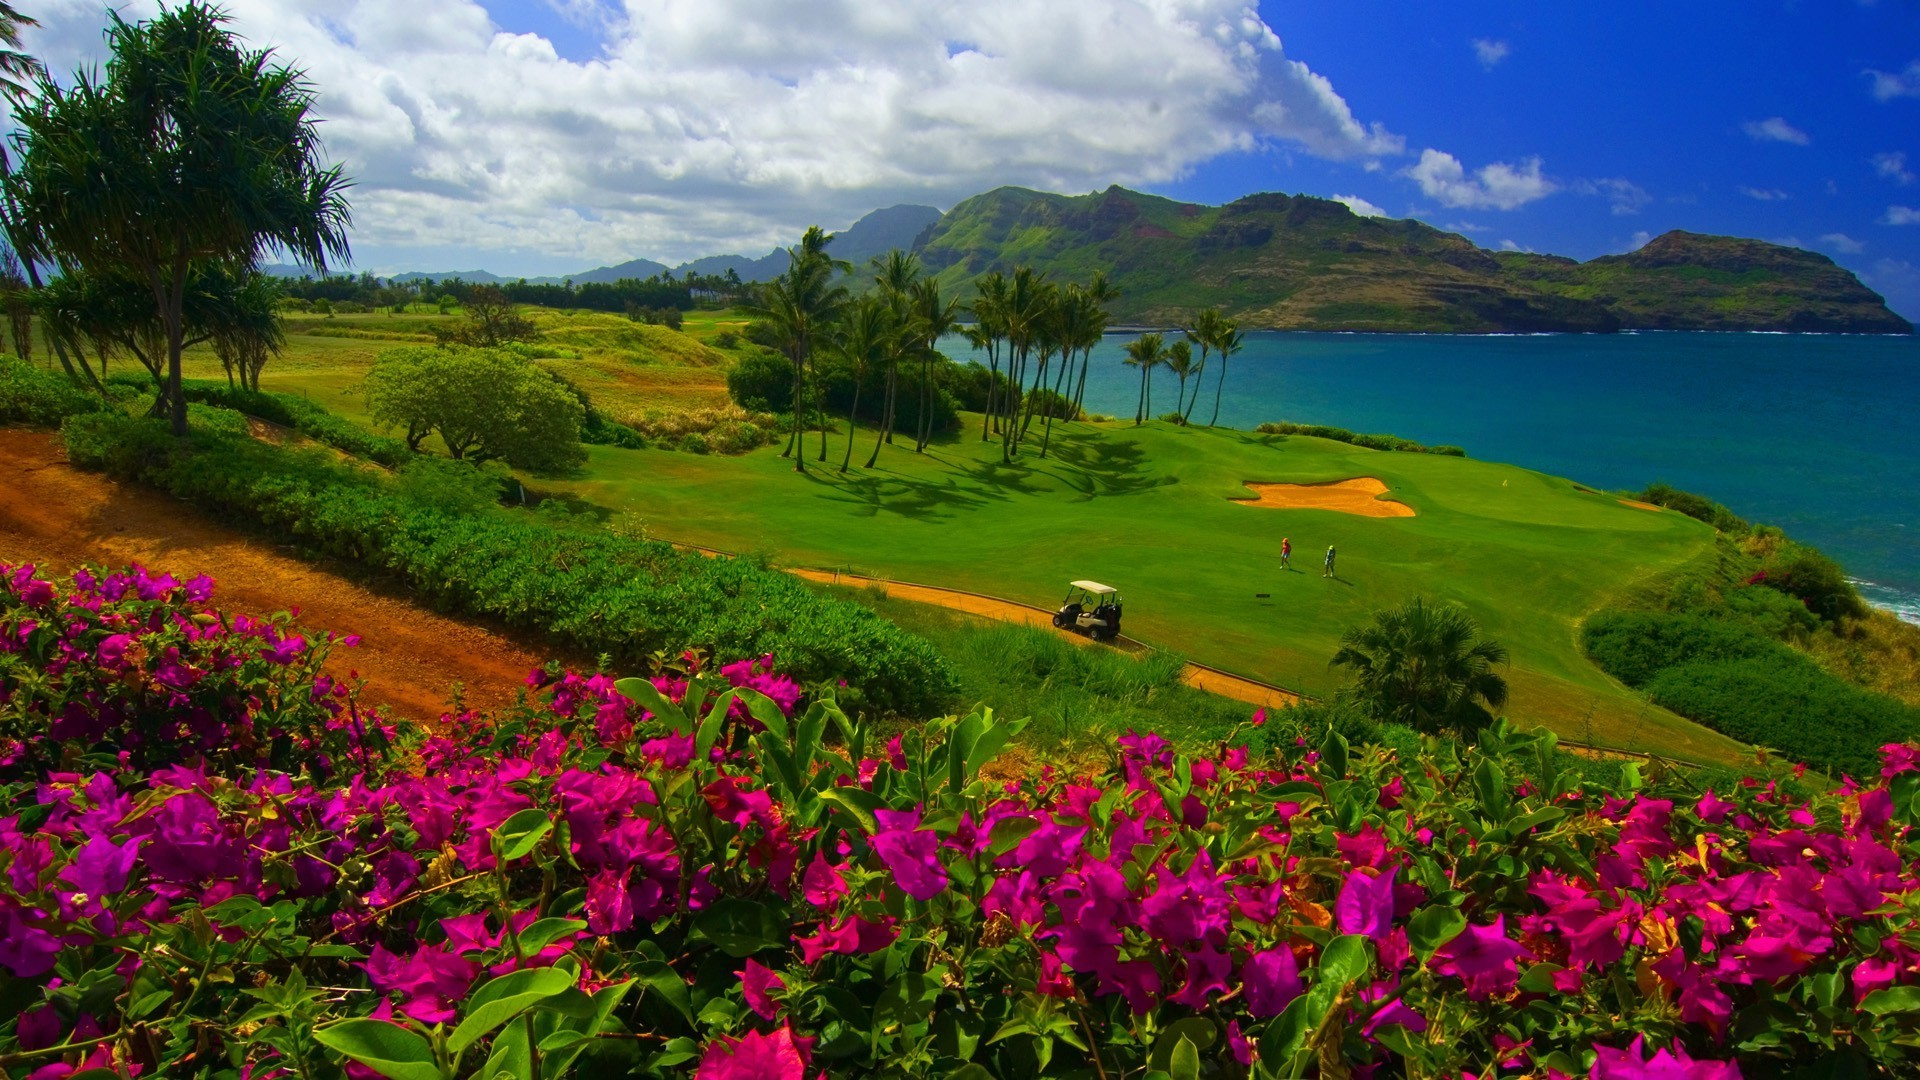 1920x1080 nature, Landscape, Water, Trees, Sea, Hawaii, Golf Course, Flowers, Grass,  Sand, Palm Trees, Mountain, Hill, Clouds Wallpapers HD / Desktop and Mobile  ...